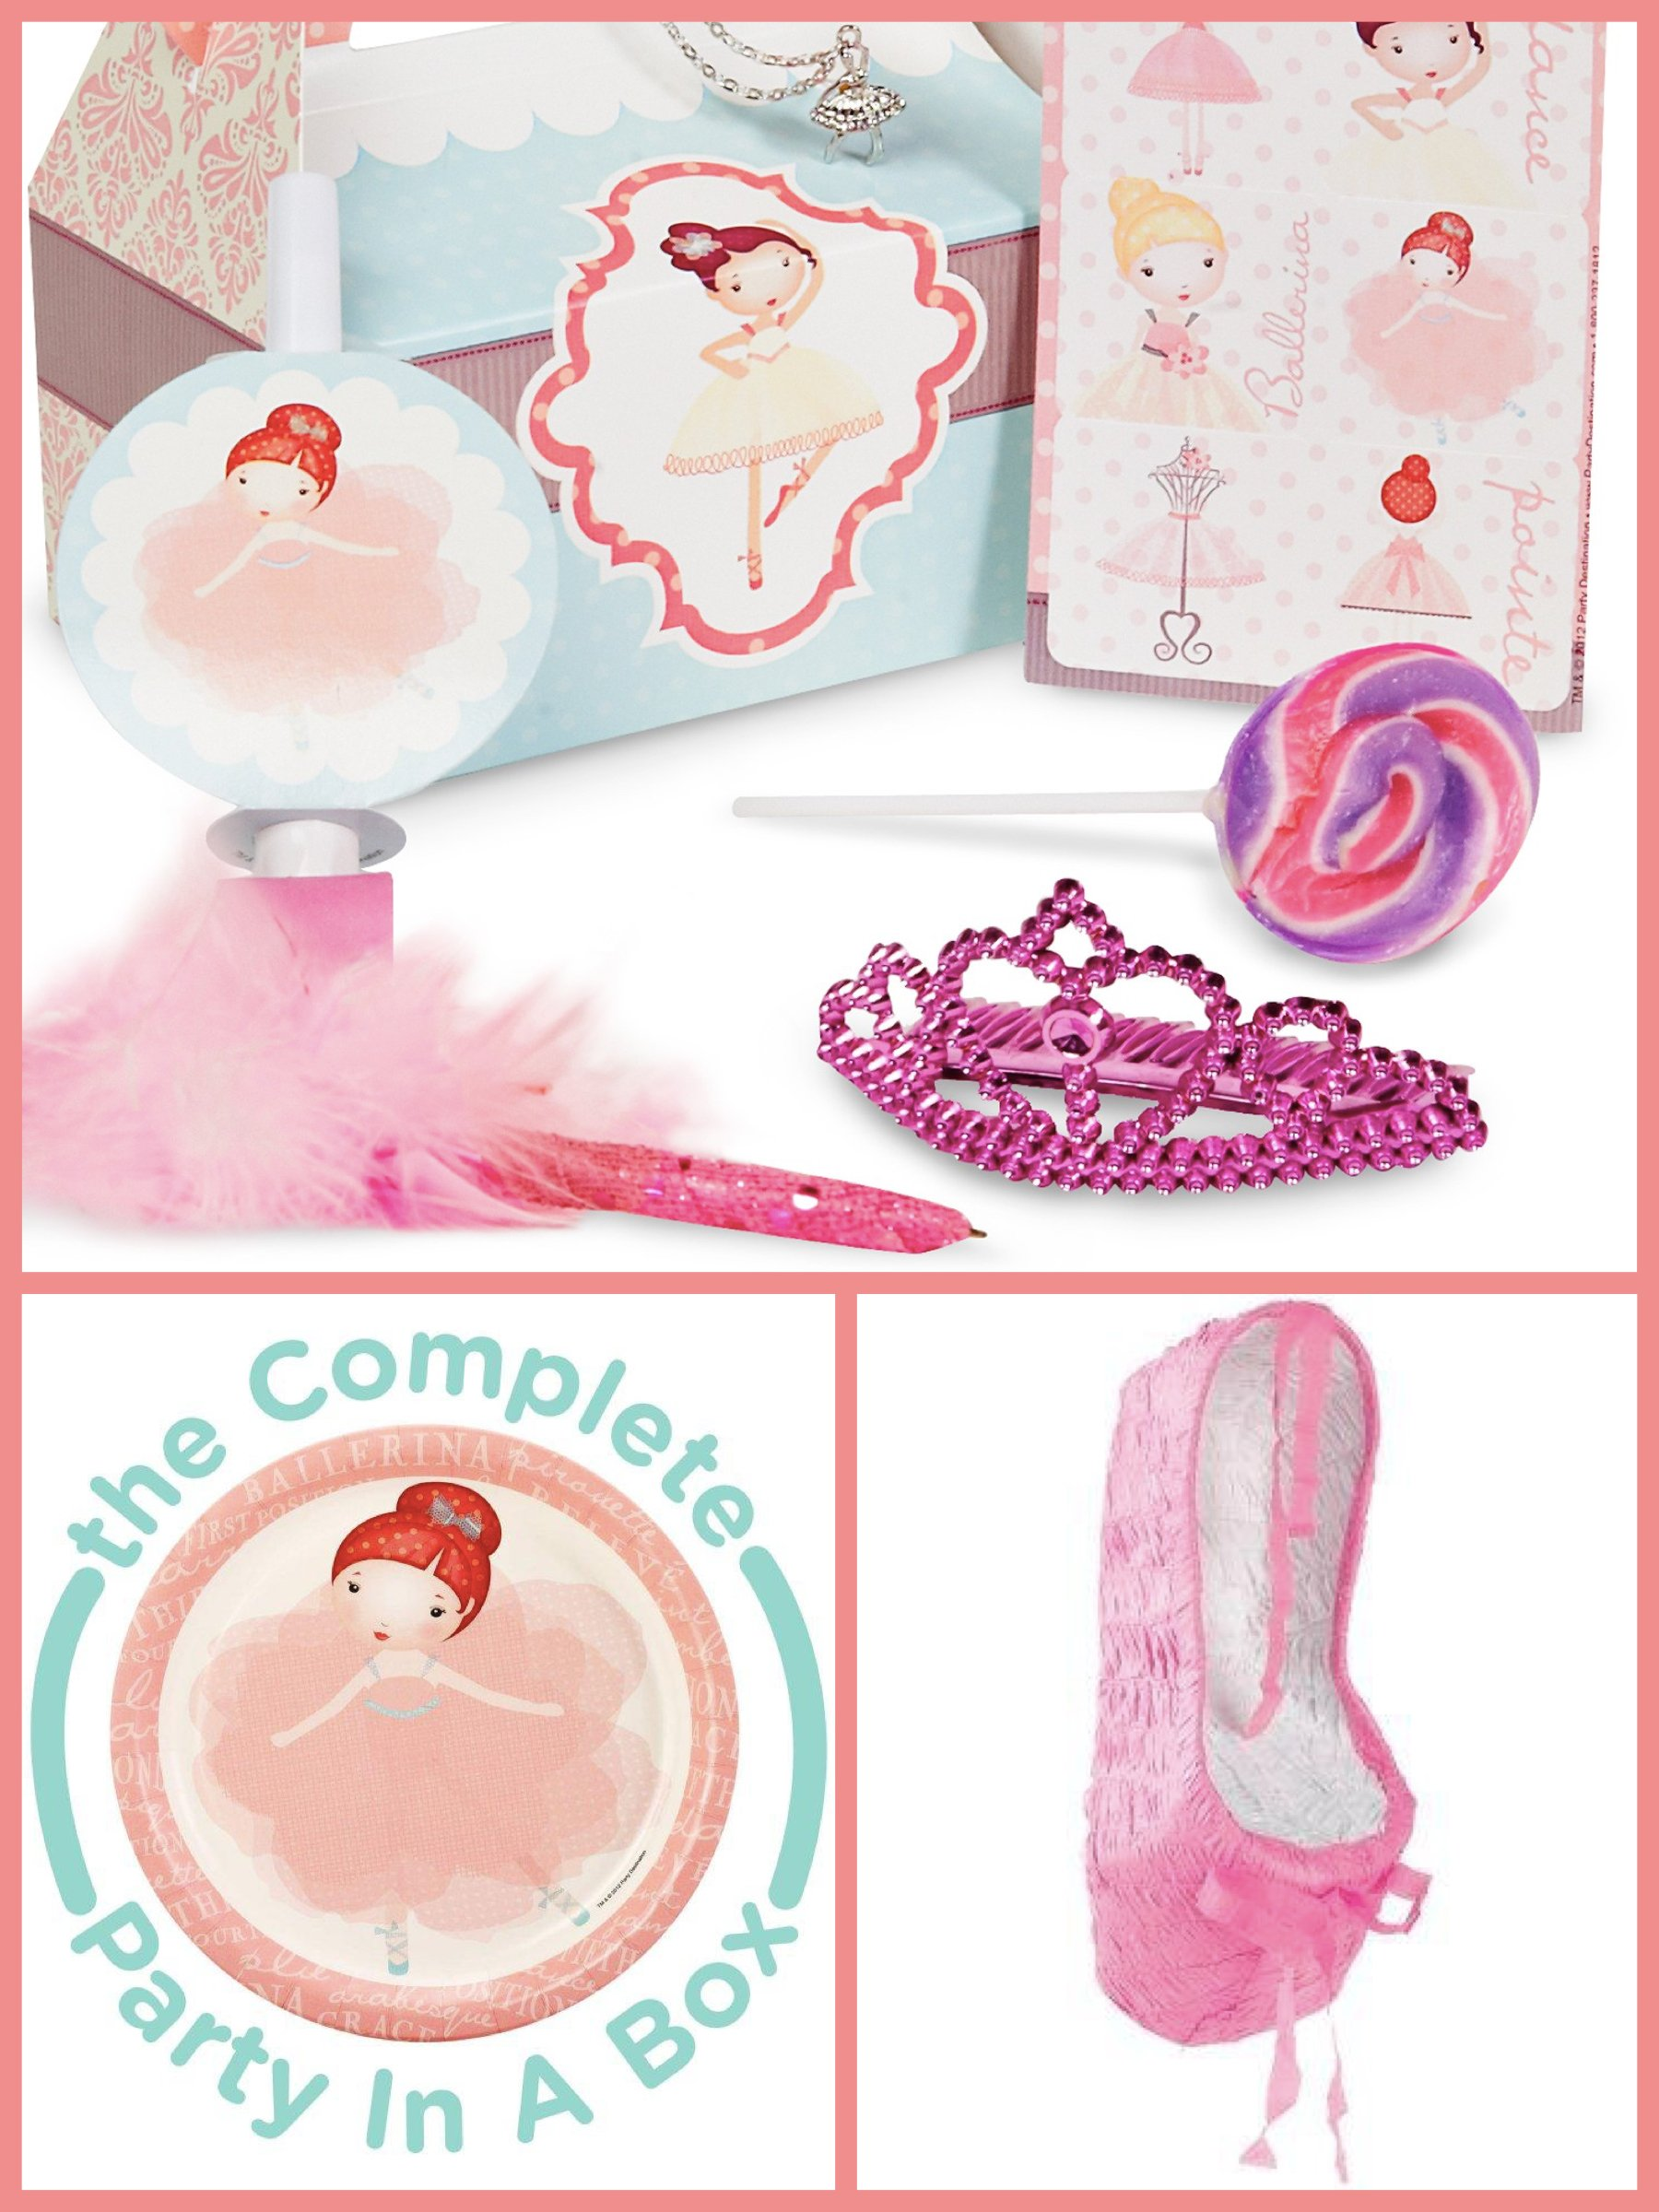 Ballerina Tutu Birthday Party in a Box